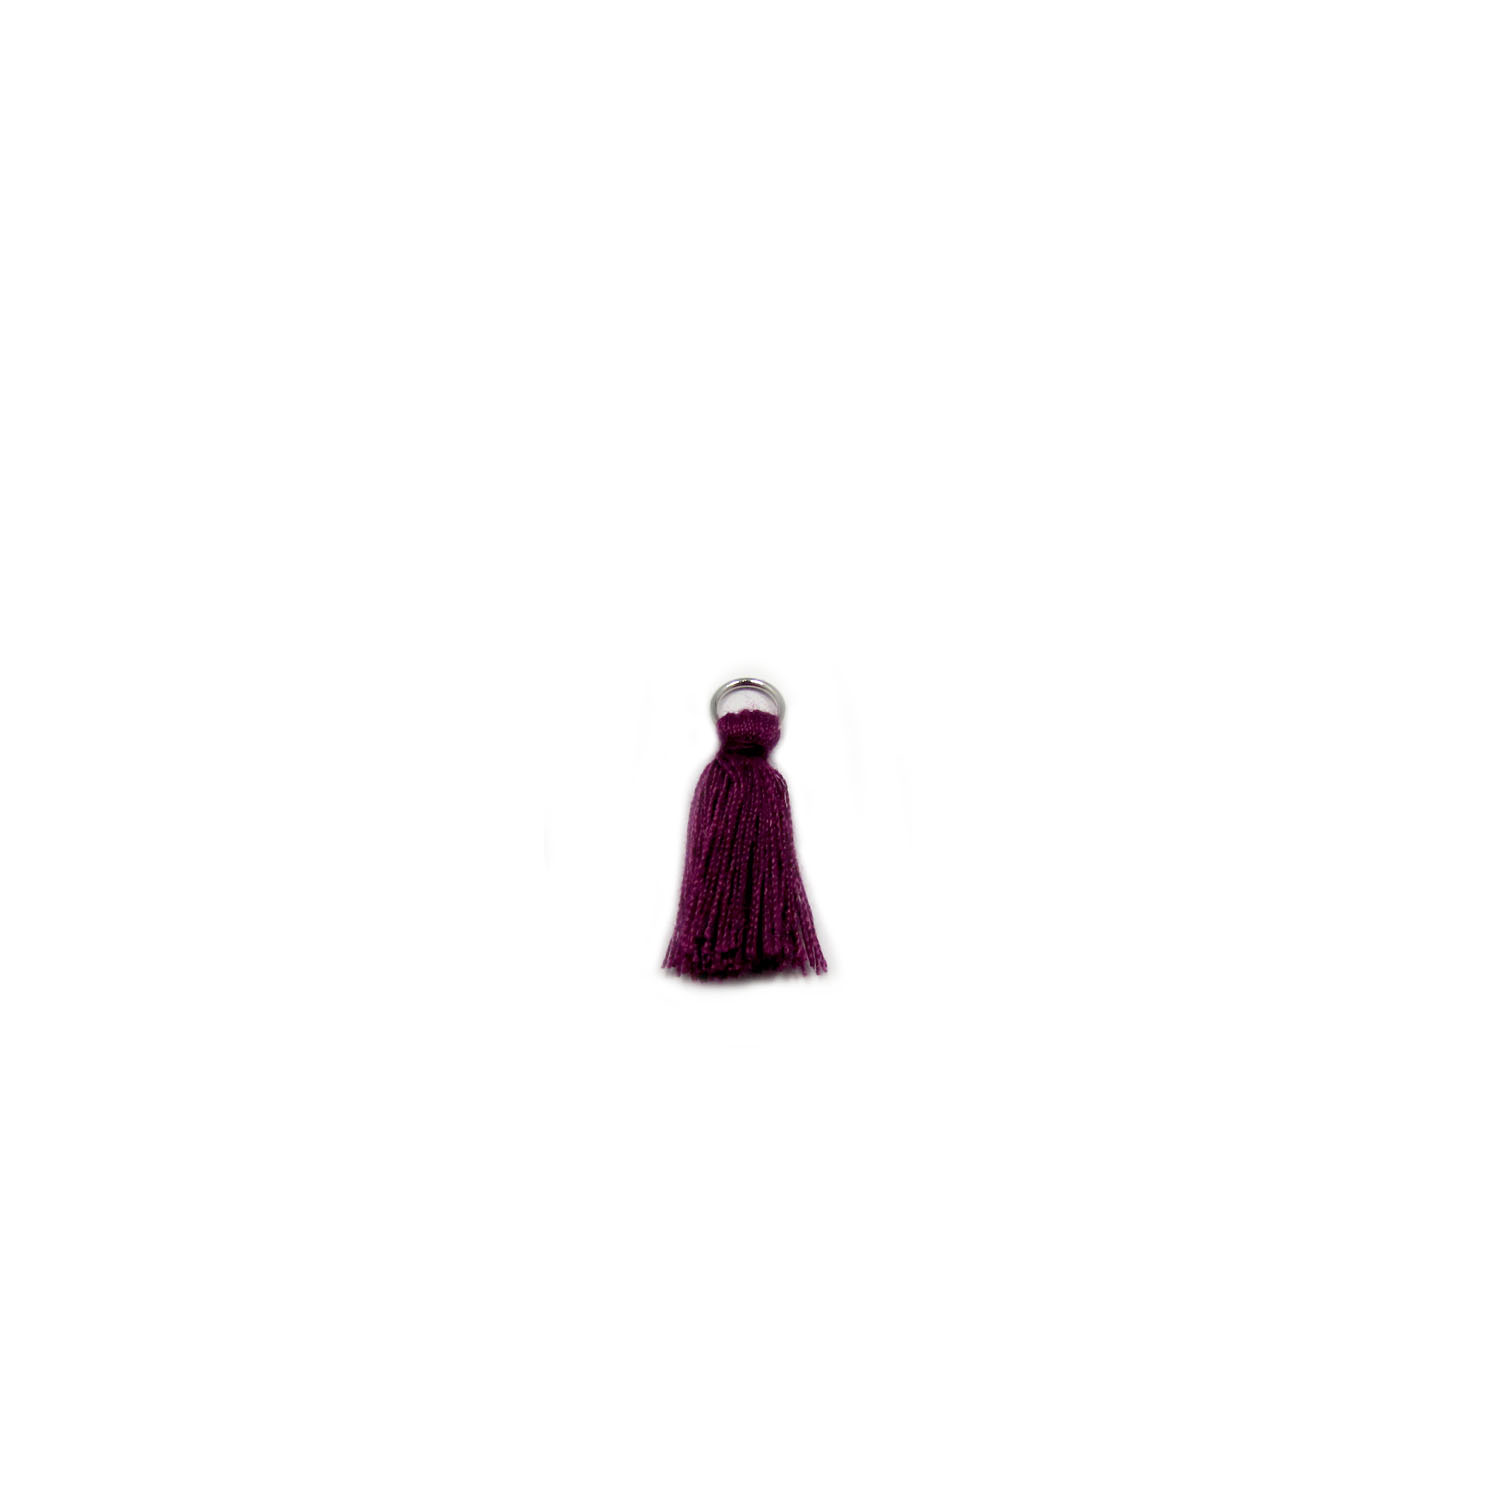 3cm cotton tassel with base metal silver jump ring - purple